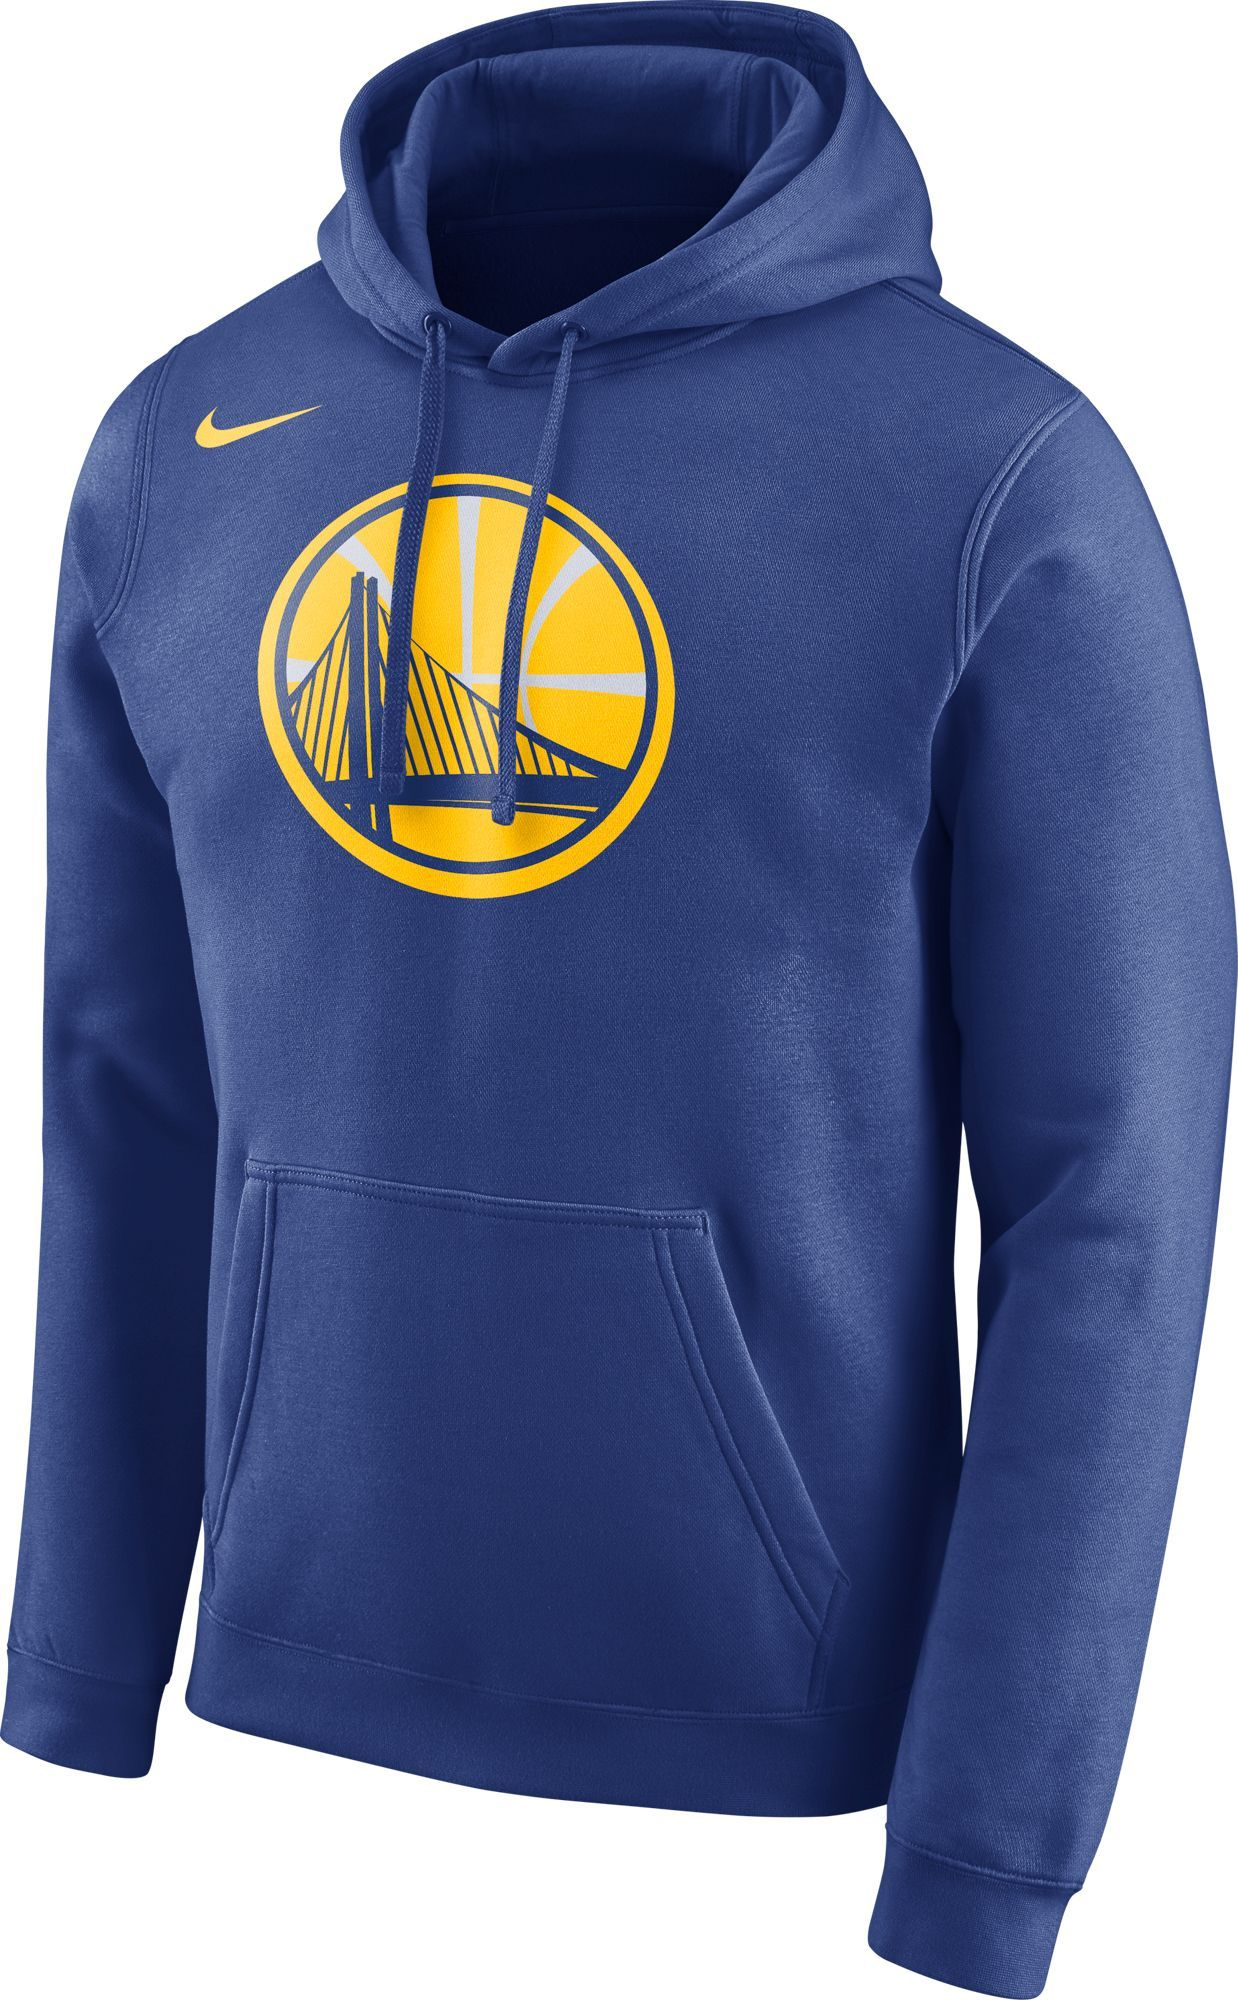 afd193f49 Nike Men s Golden State Warriors Club Royal Pullover Hoodie ...